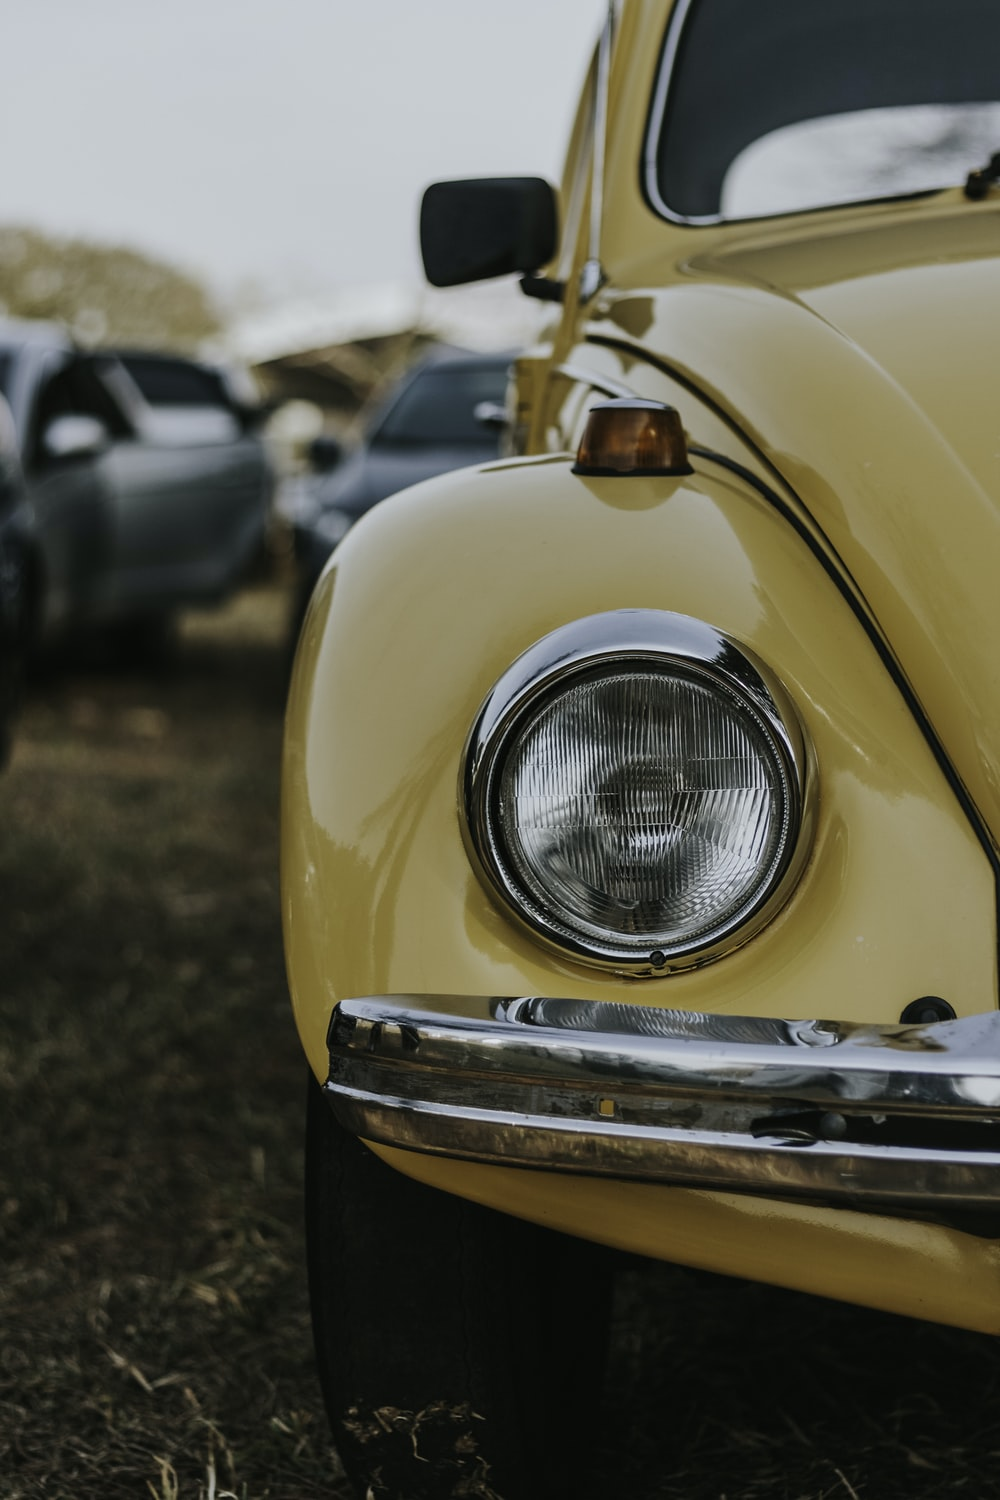 Vw Beetle Pictures Download Free Images On Unsplash